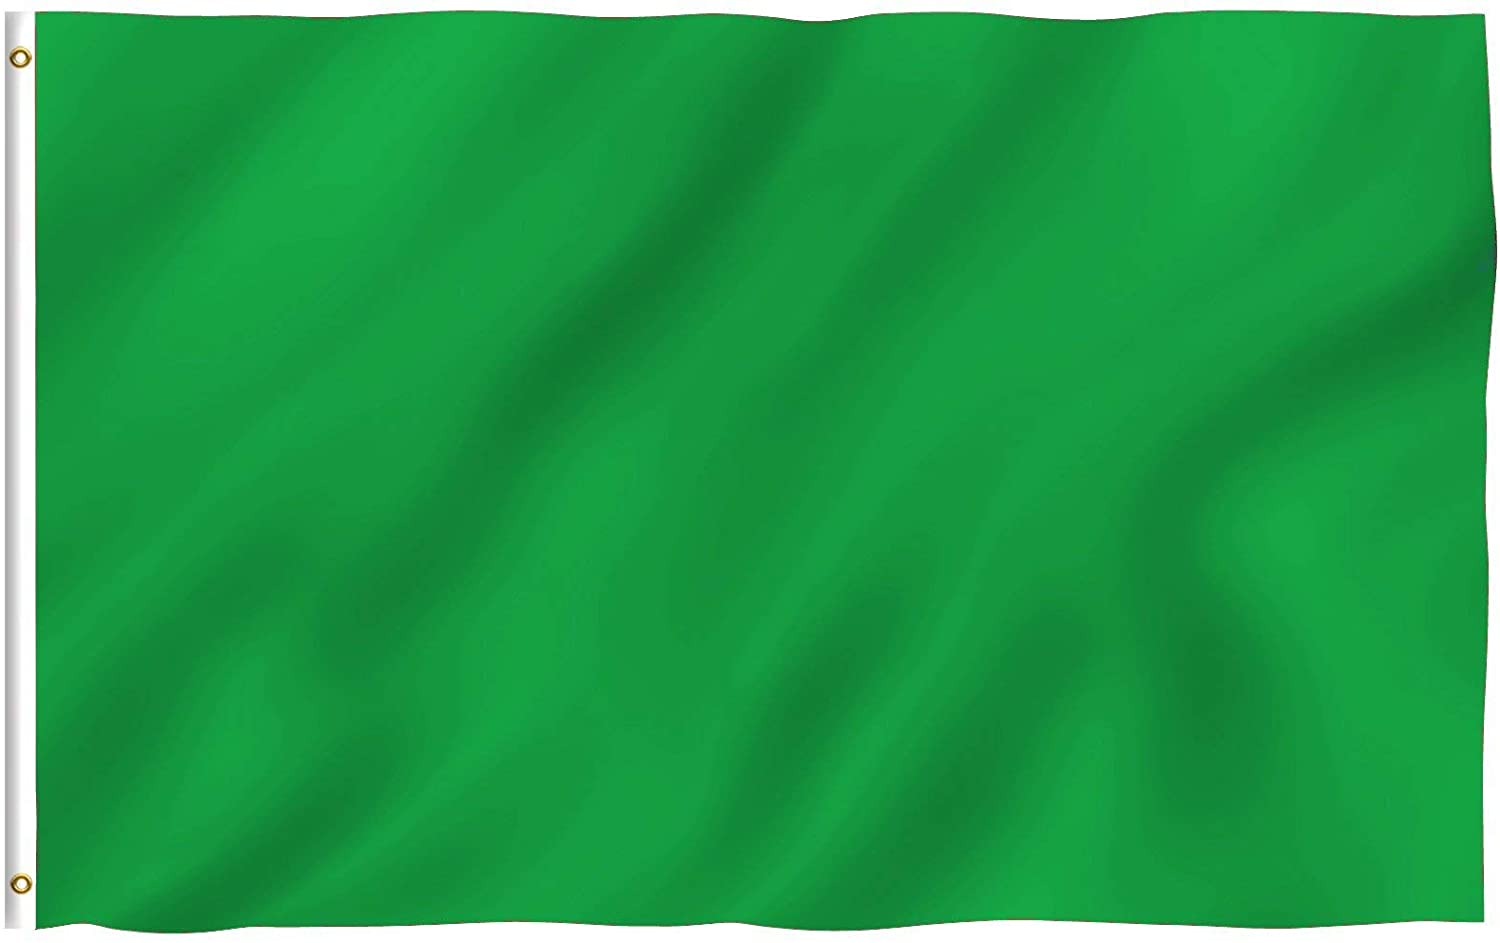 Anley Fly Breeze 3x5 Foot (90 X 150cm) Solid Green Flag - Vivid Color and UV Fade Resistant - Canvas Header and Double Stitched - Plain Green Flags Polyester with Brass Grommets 3 X 5 Ft